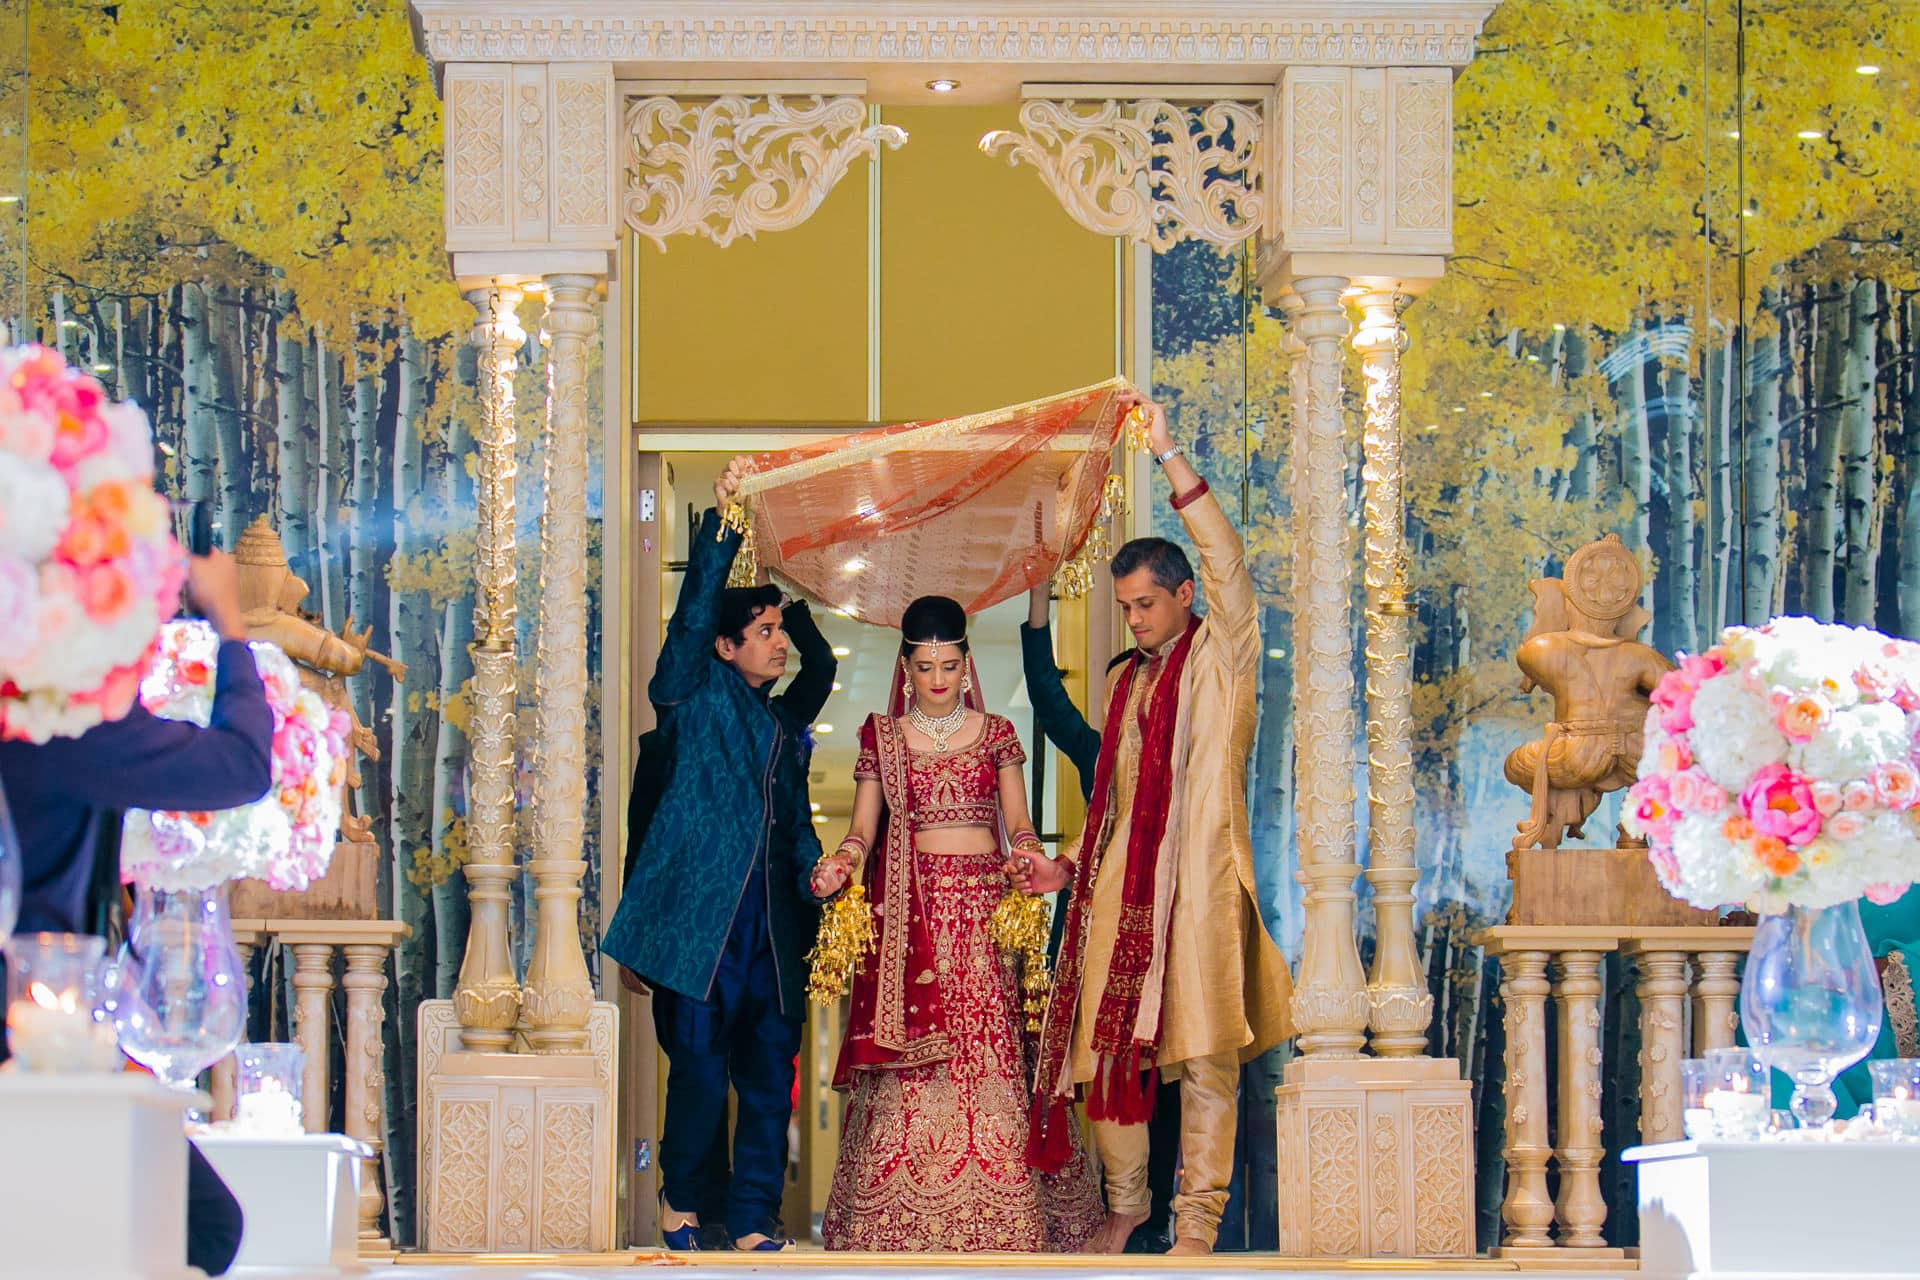 Hindu Bride entrance